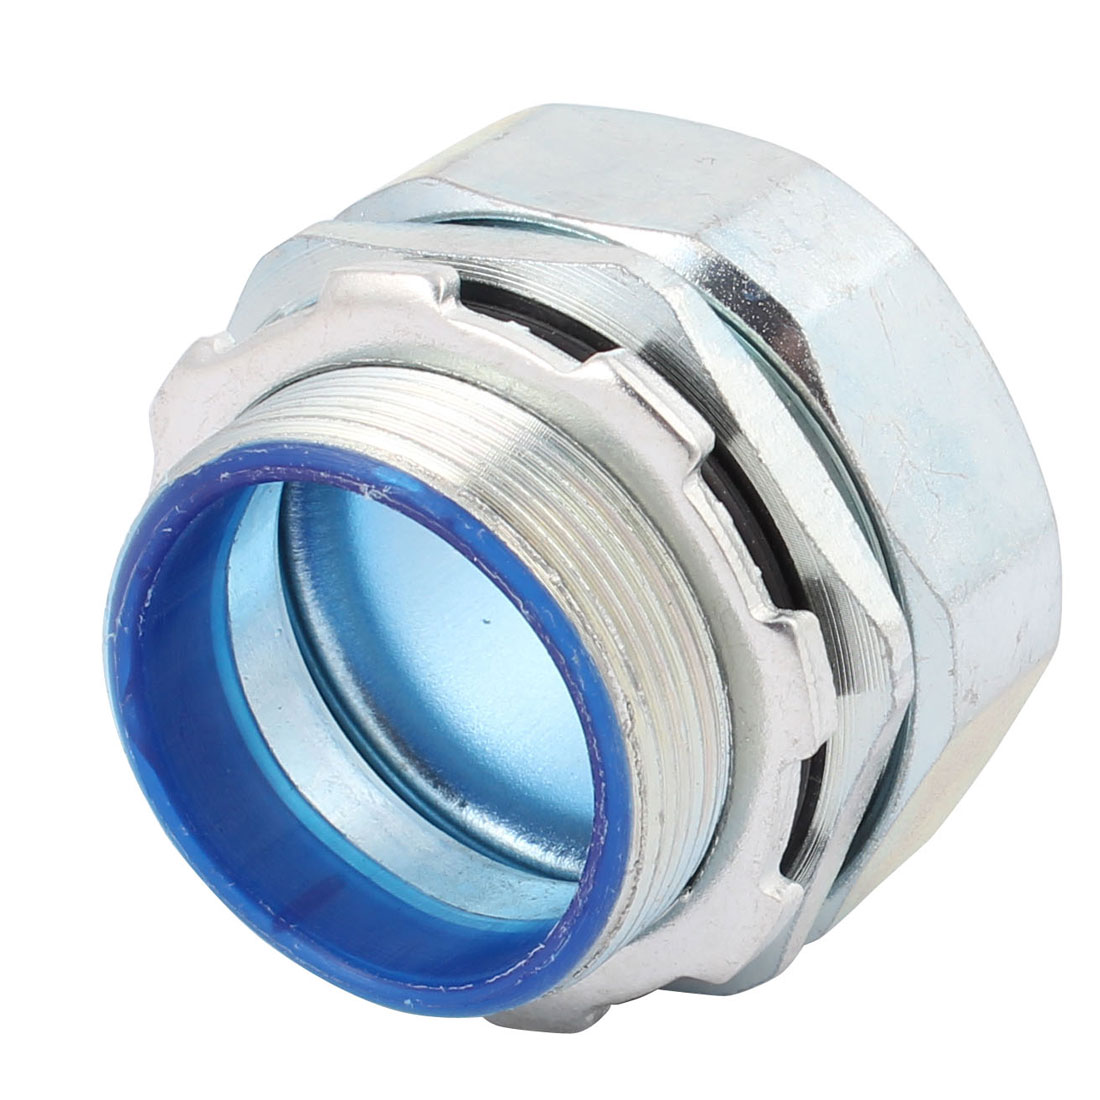 "Unique Bargains NBG-10M Hose Tube Fitting Straight Adaptor 5/4"" Tube OD x M40 Male - image 3 de 4"